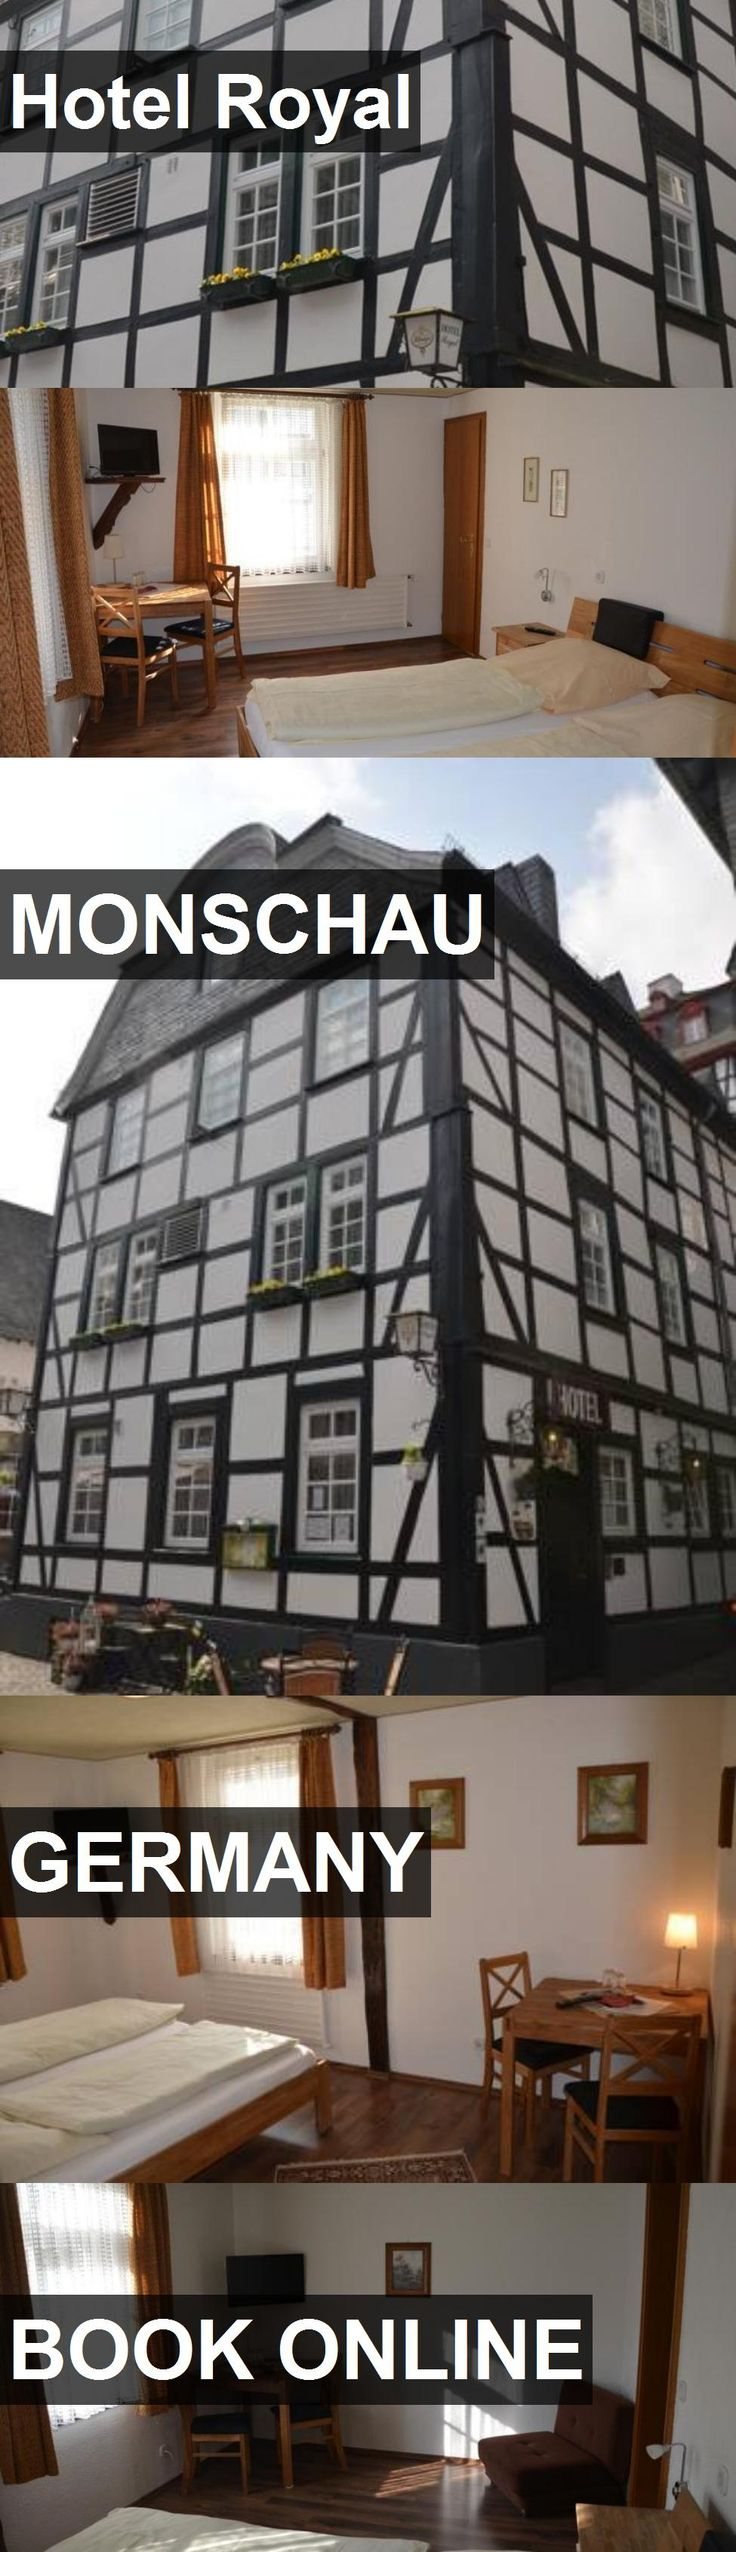 Hotel Royal in Monschau, Germany. For more information, photos, reviews and best prices please follow the link. #Germany #Monschau #travel #vacation #hotel